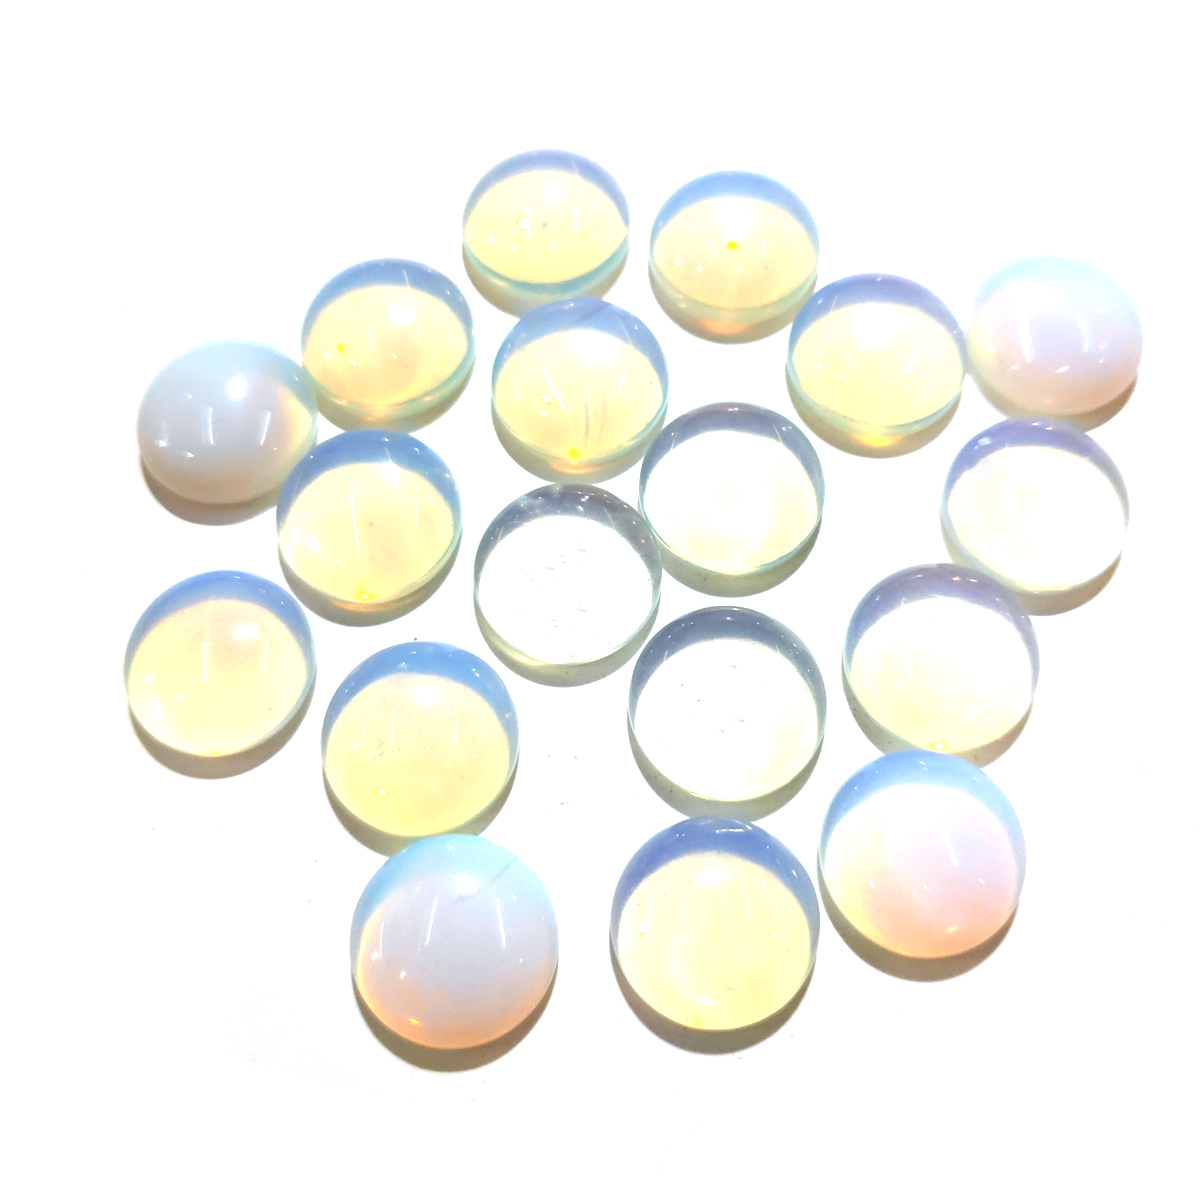 20 PCS Opal Natural Stones Cabochon 6mm 8mm 10mm Round No Hole For Making Jewelry DIY